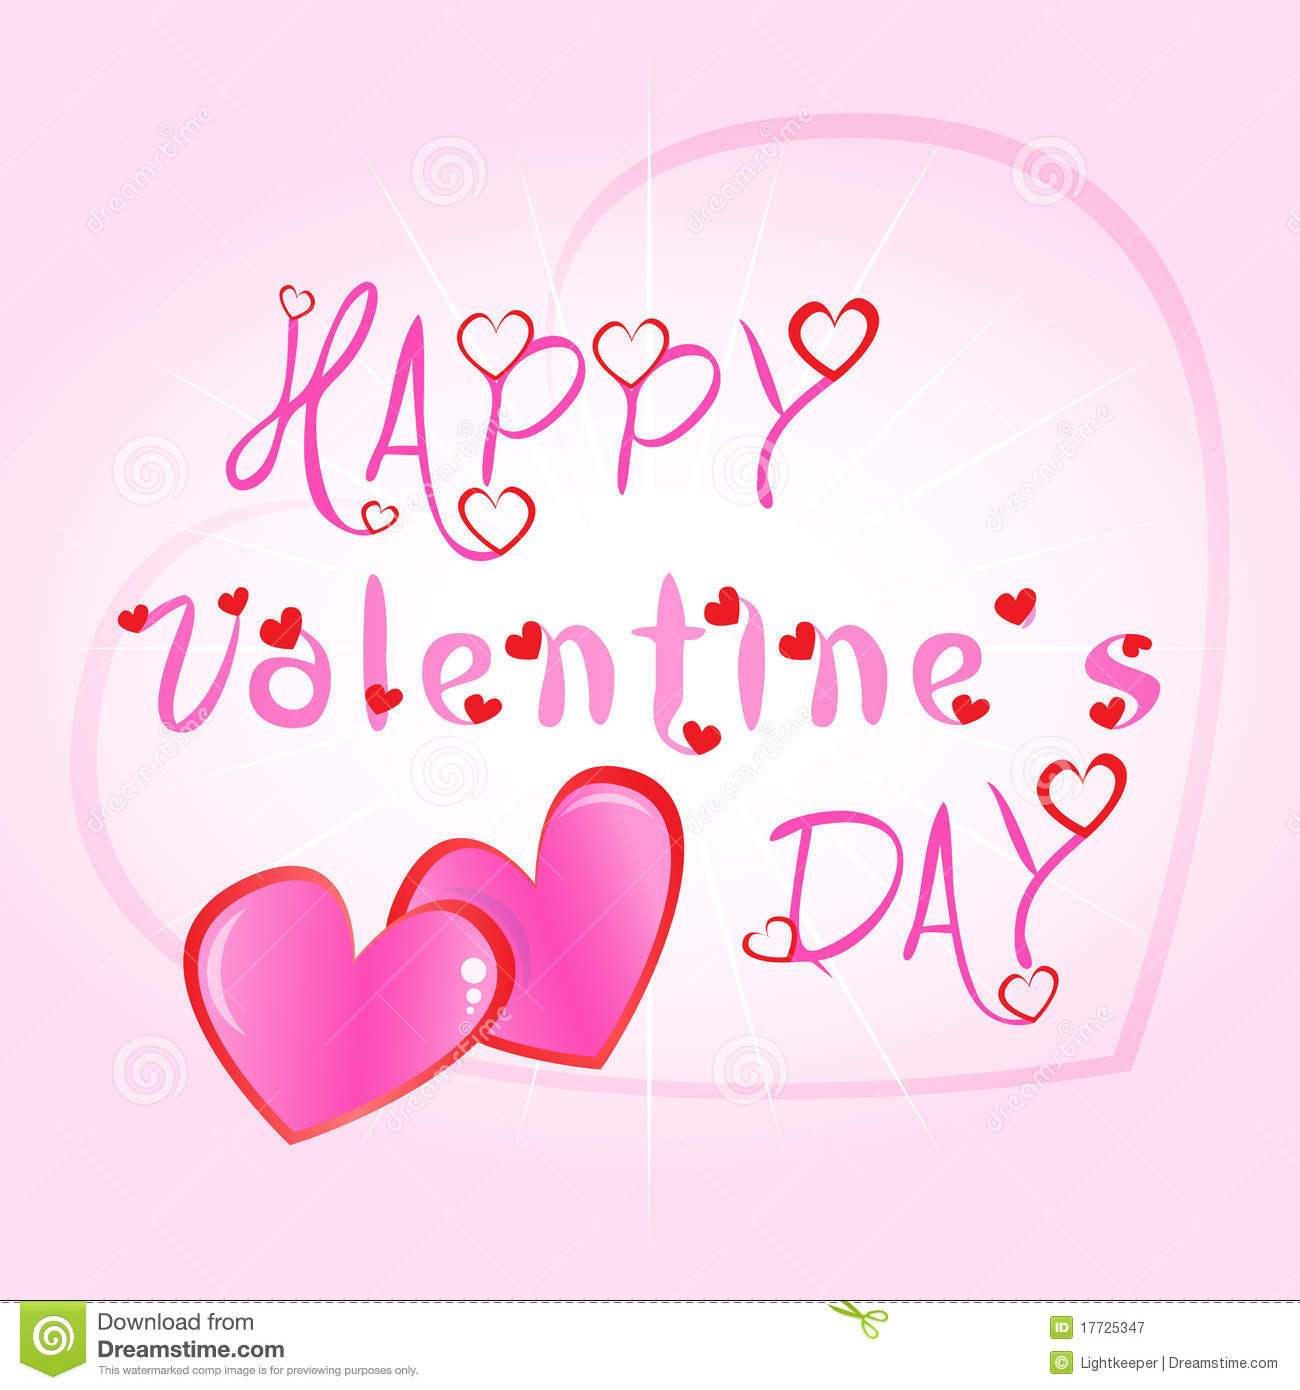 Happy valentines day greeting card illustration royalty free stock